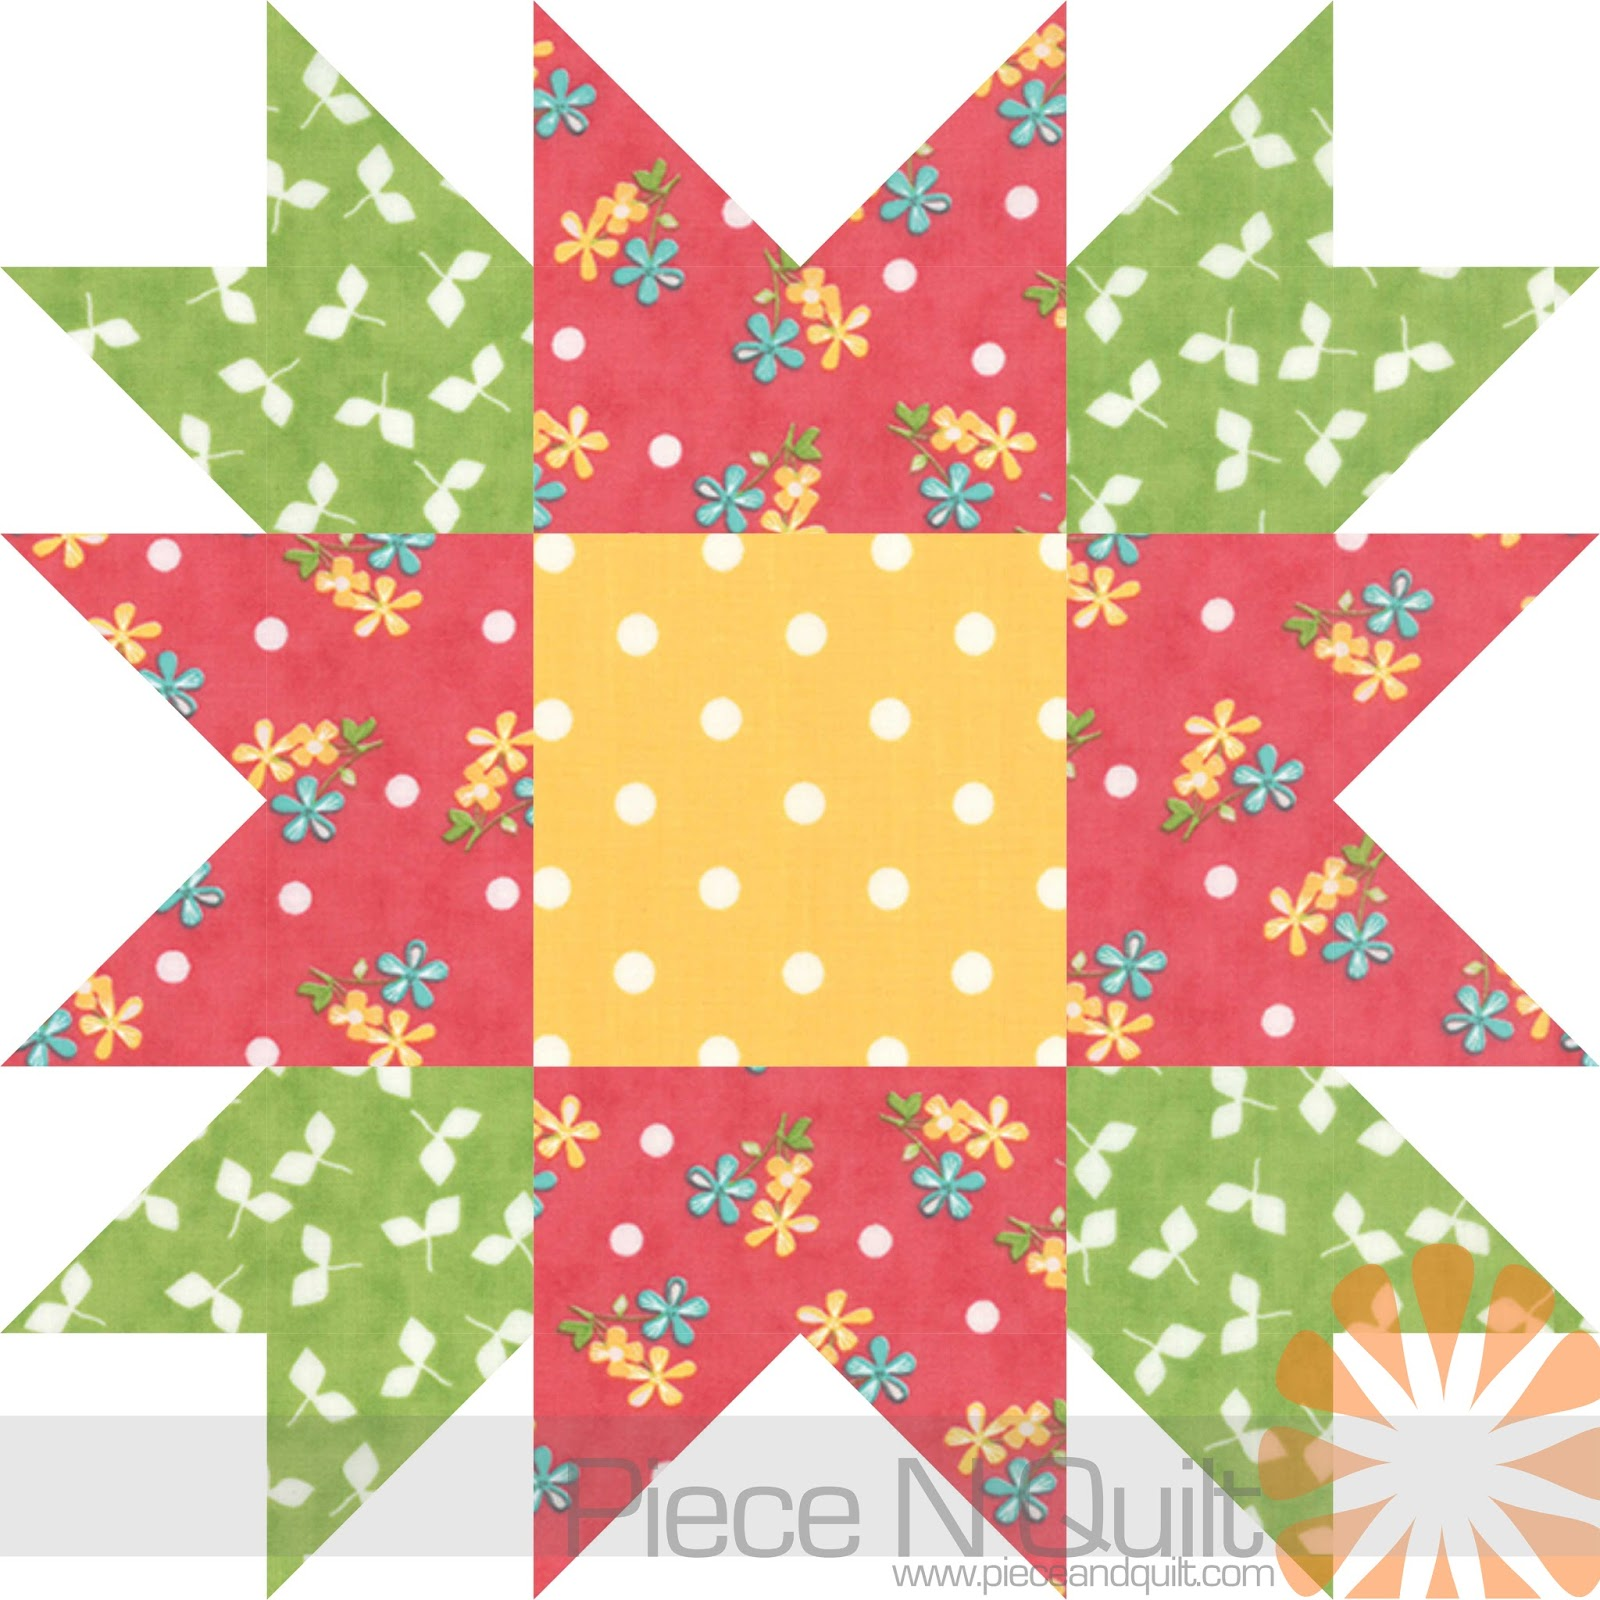 Free Star Flower Quilt Patterns : Piece N Quilt: Flower Star Quilt Pattern - The Battle Against Breast Cancer